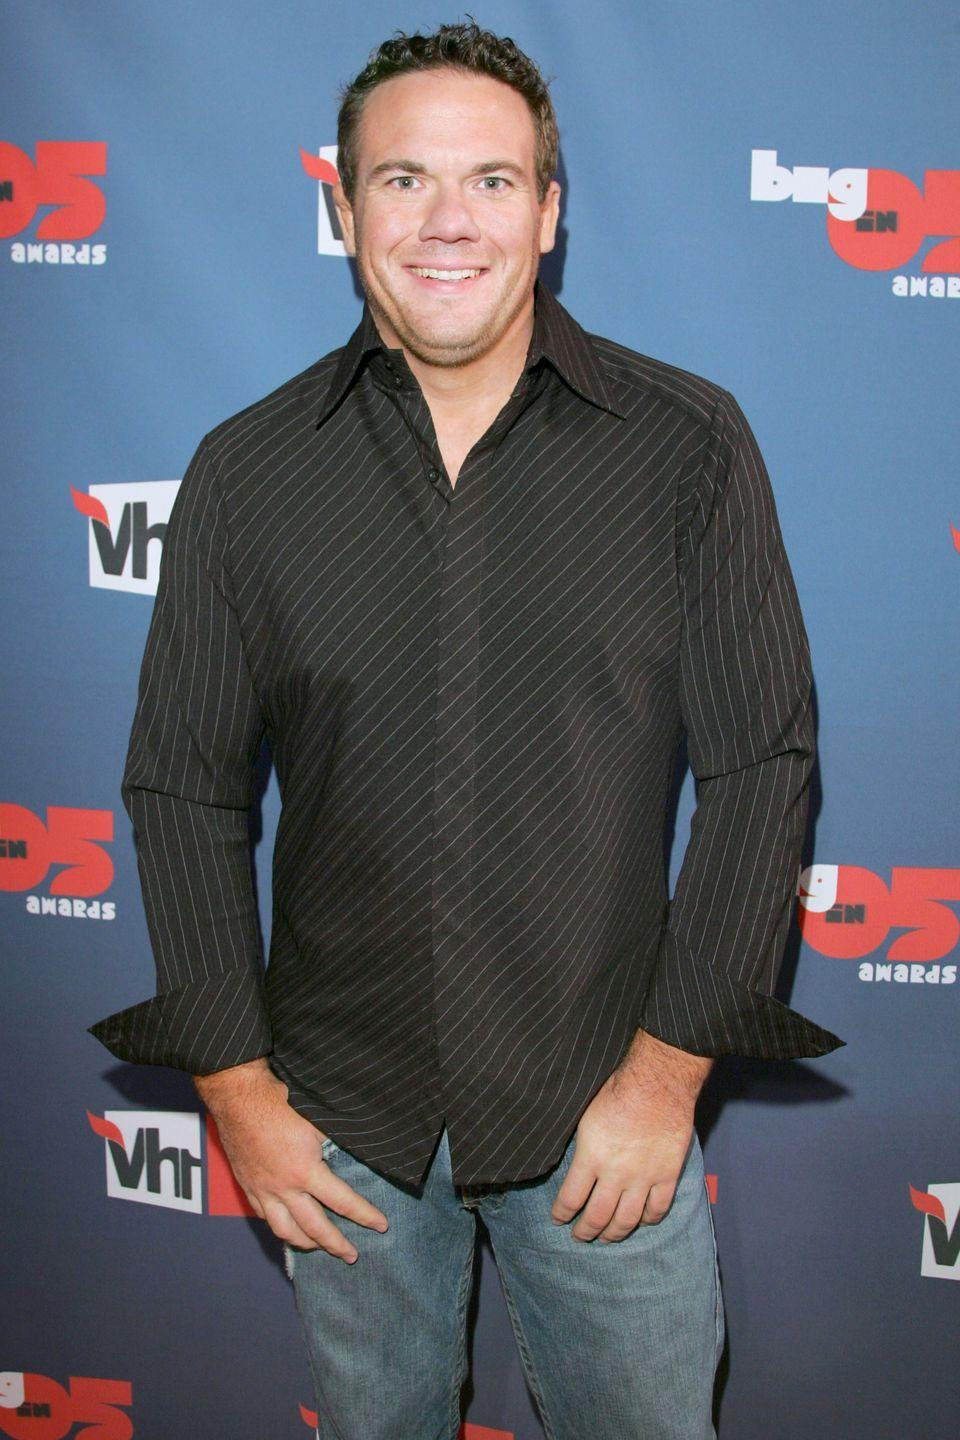 <p>Matt's transformation on the show was incredible. He went from weighing 339 pounds to 182 pounds, which led to him winning the second season in 2005. </p>